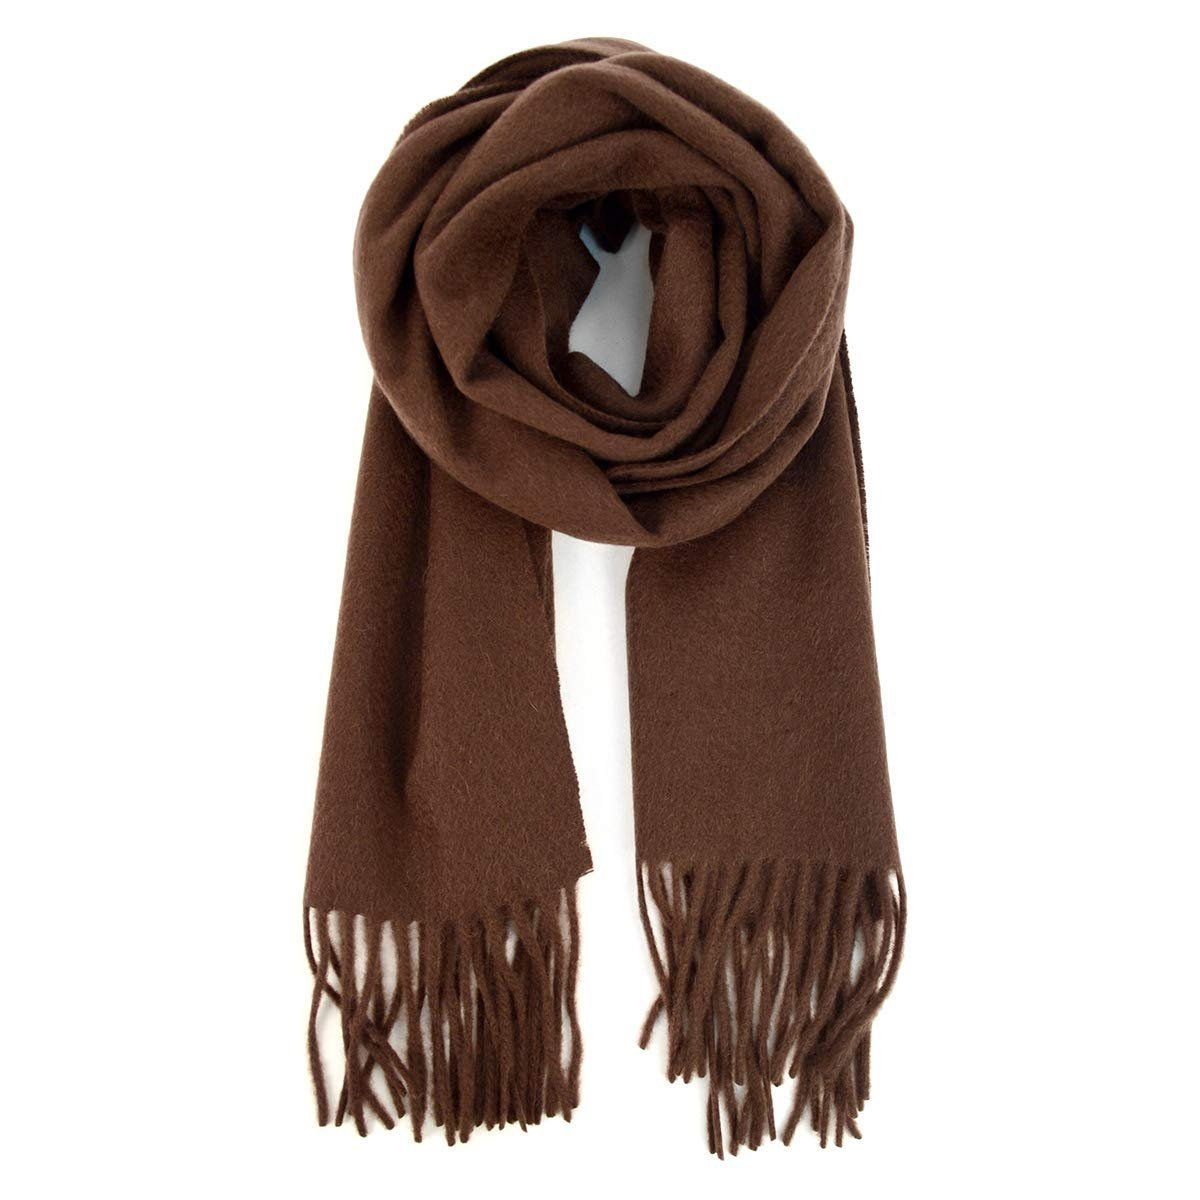 29bdafb64e13e 100% Cashmere Soft Unisex Solid Color Scarf with Tassels Winter Luxury, CHOCOLATE  BROWN